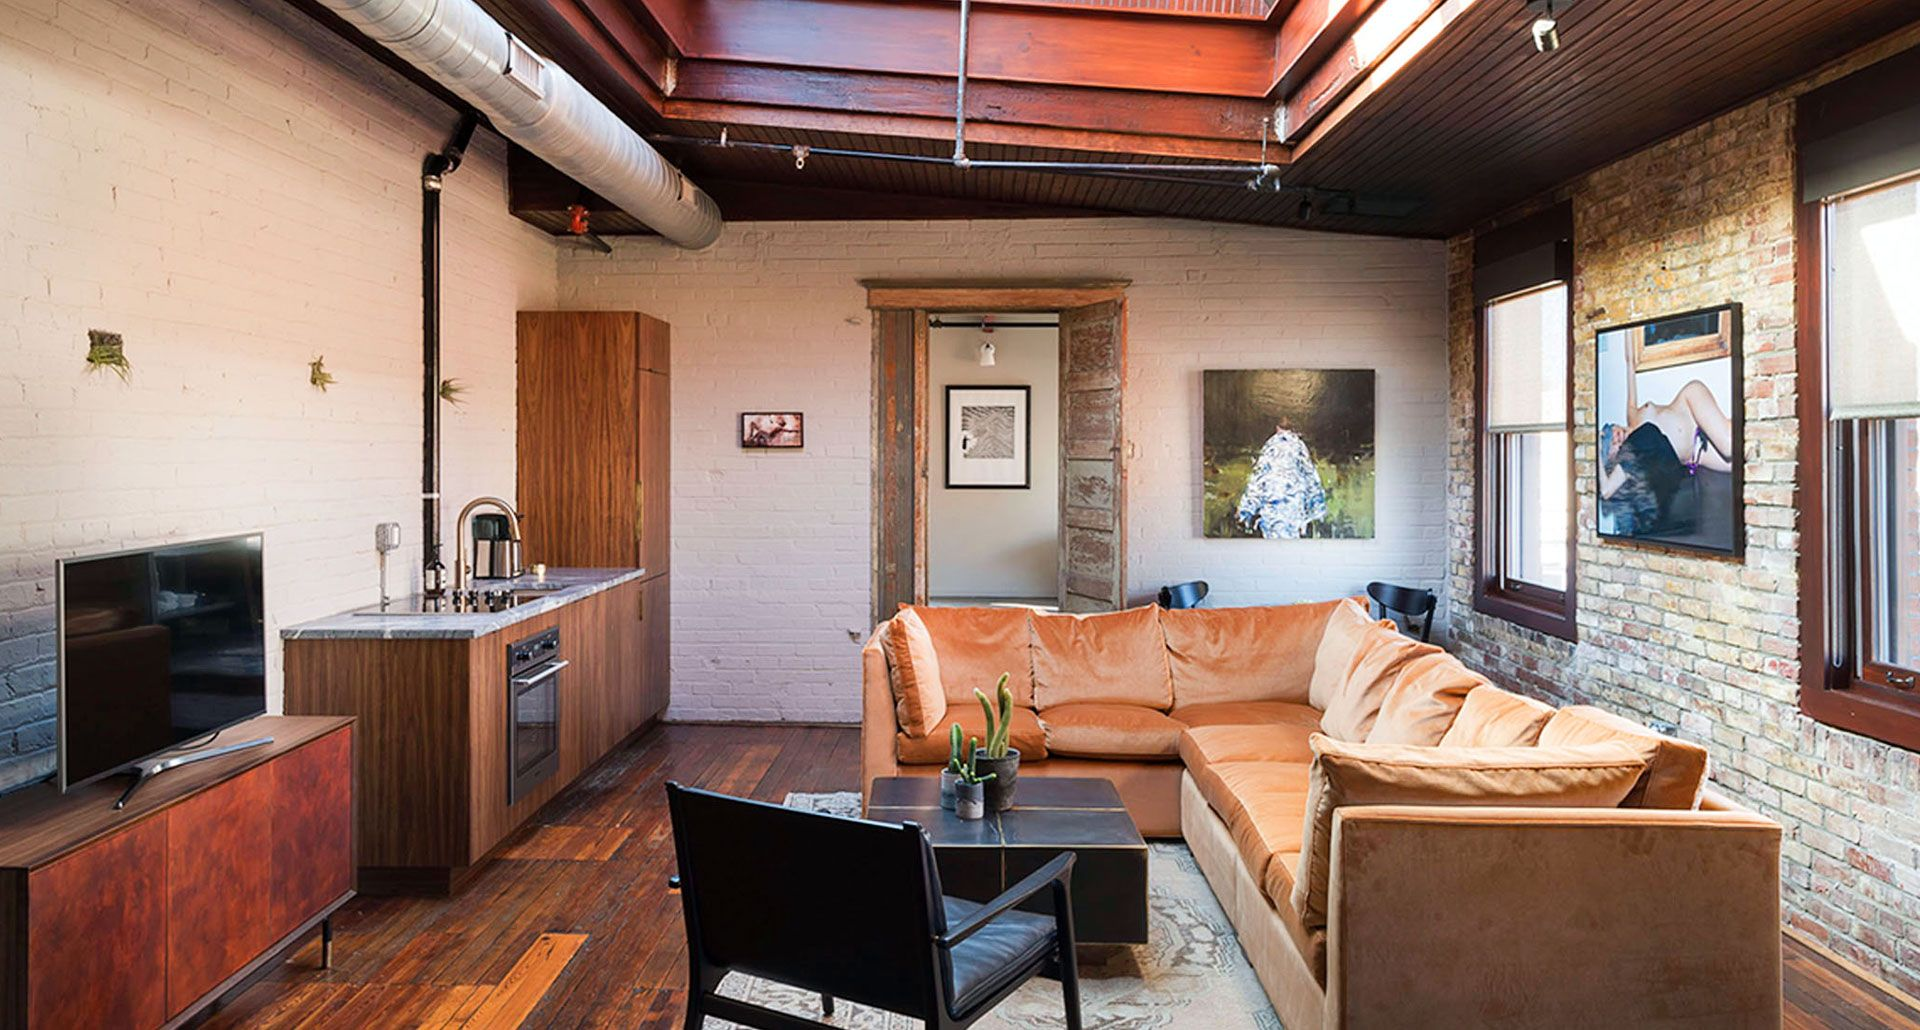 The Boutique Hotel Revival Of Philadelphia Philly Hotels Tablet